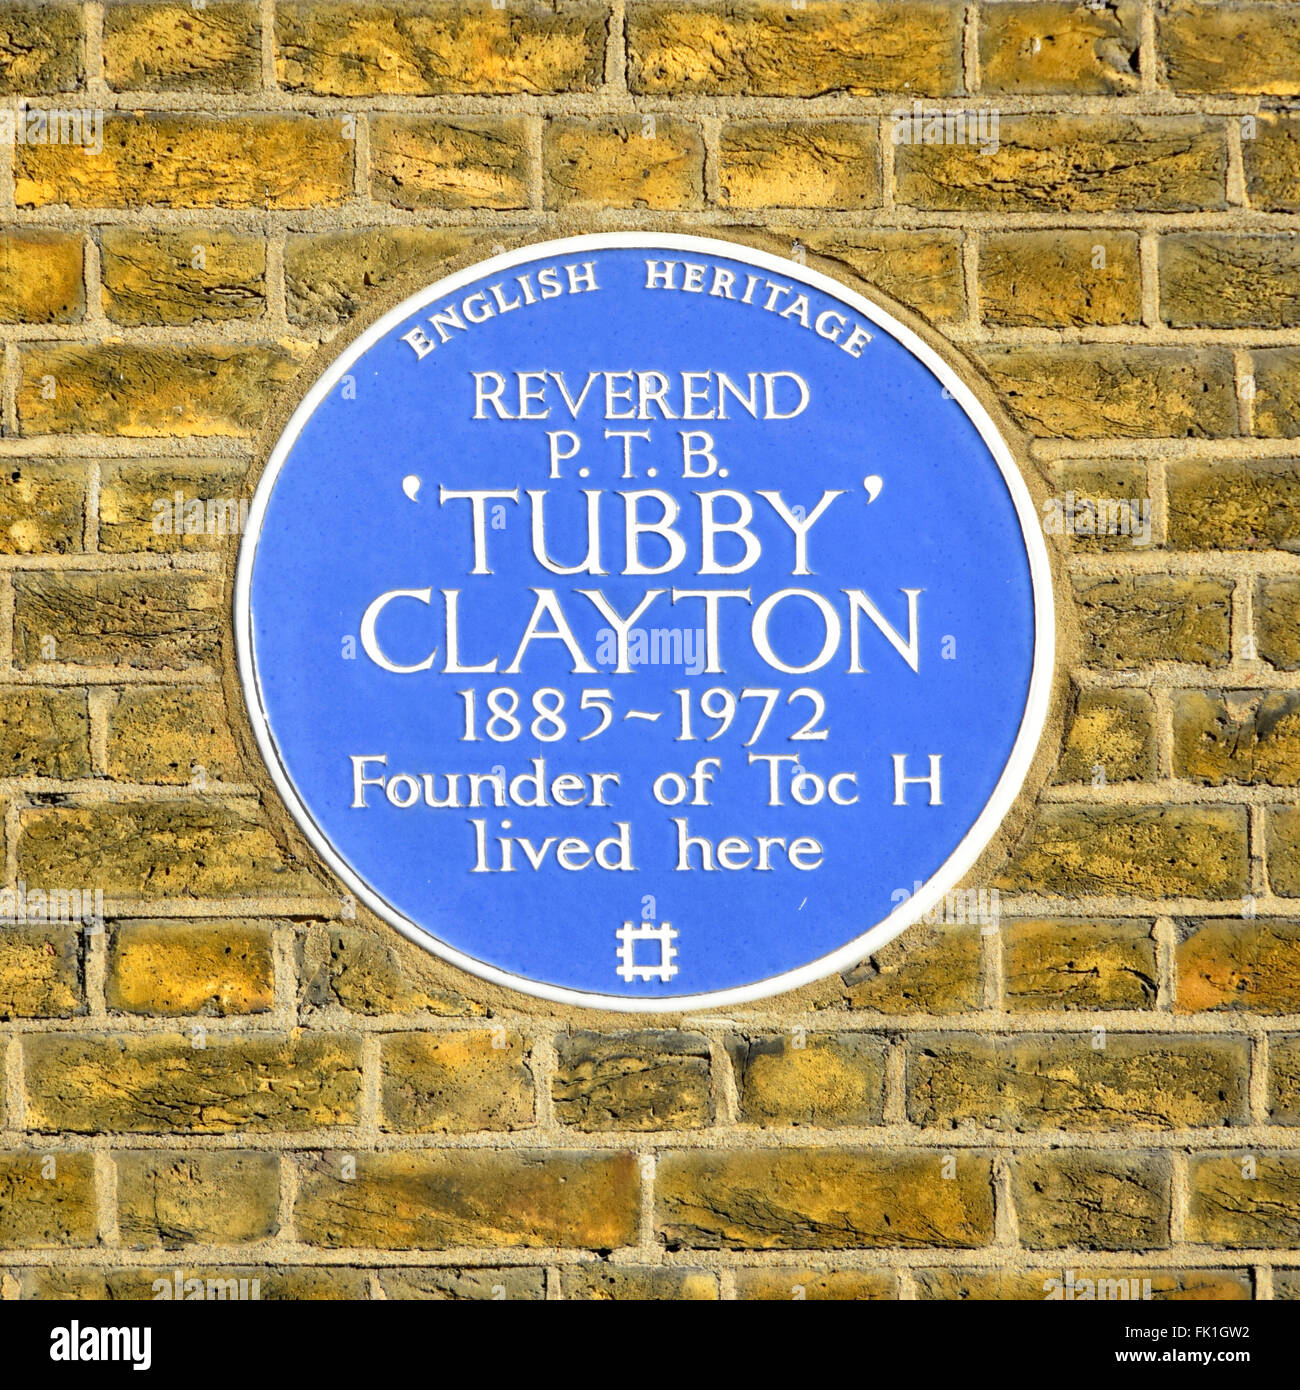 Blue Plaque English Heritage recording residence of Reverend P T B 'Tubby' Clayton founder Toc H & Vicar - Stock Image